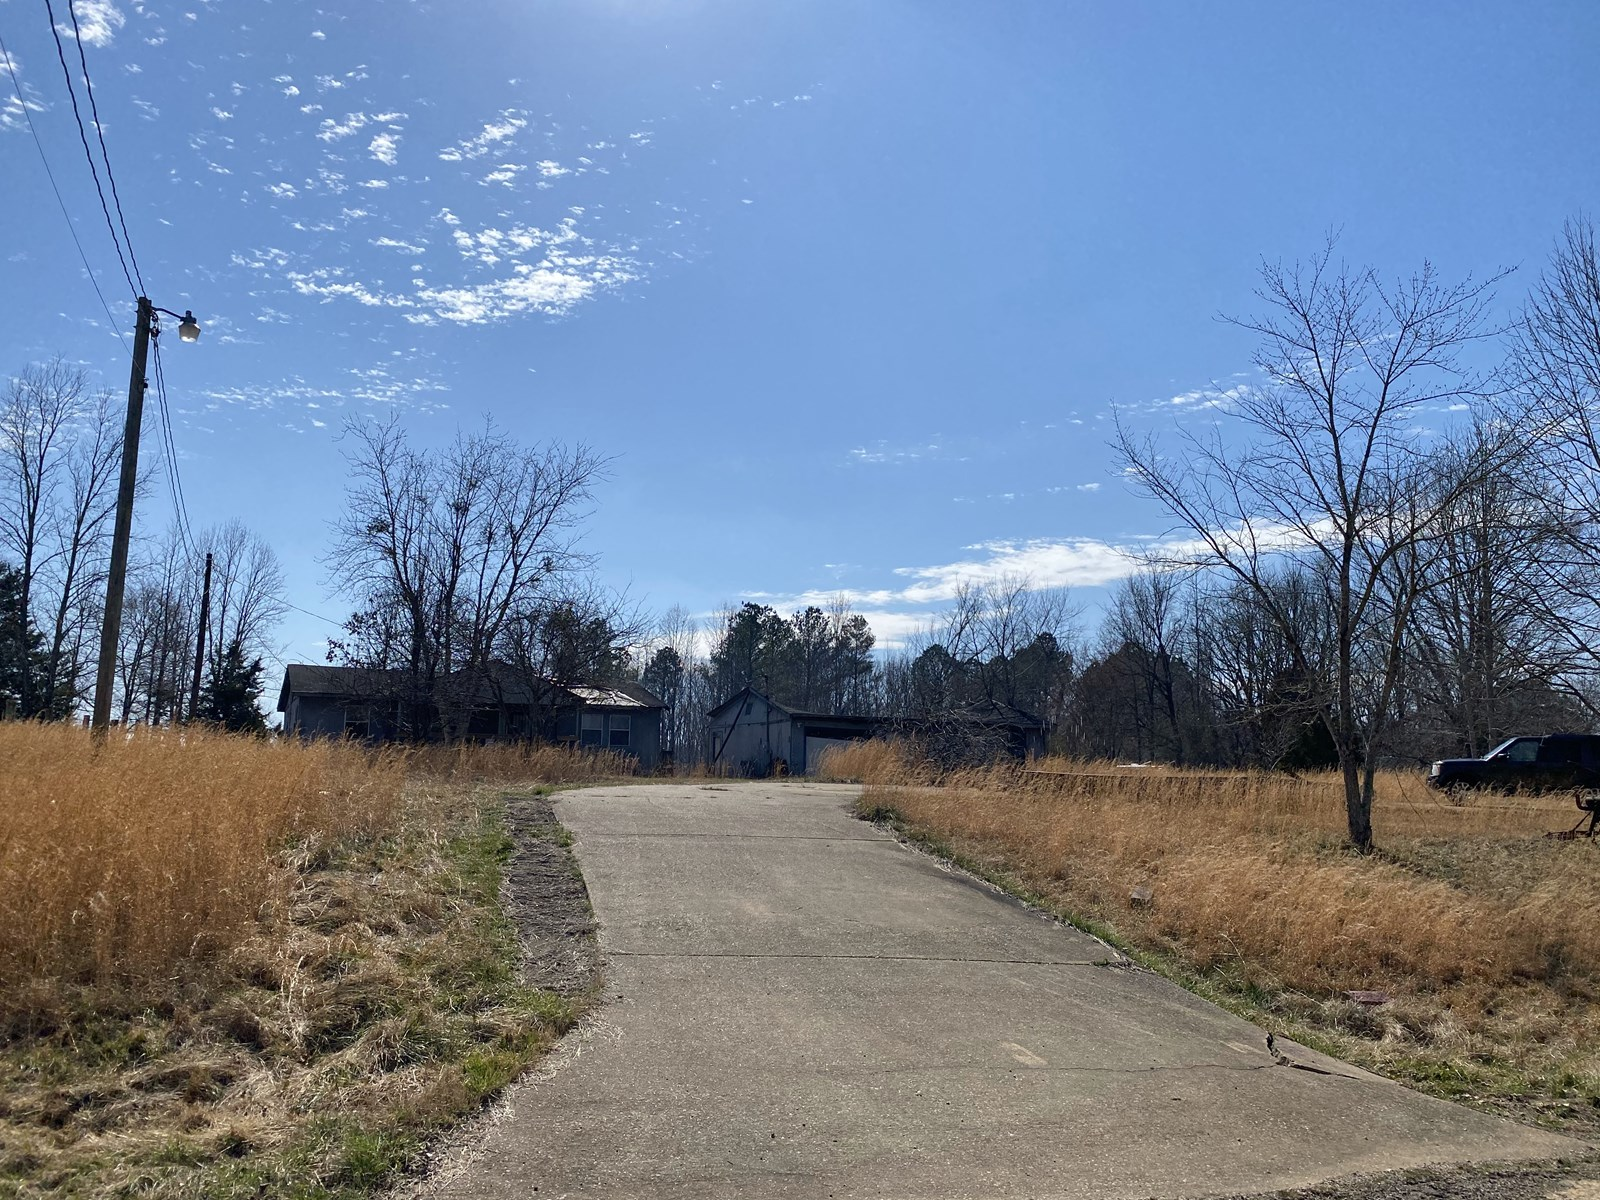 LAND FOR SALE IN TN, WATER, ELECTRICITY, SEPTIC, & OLD HOME